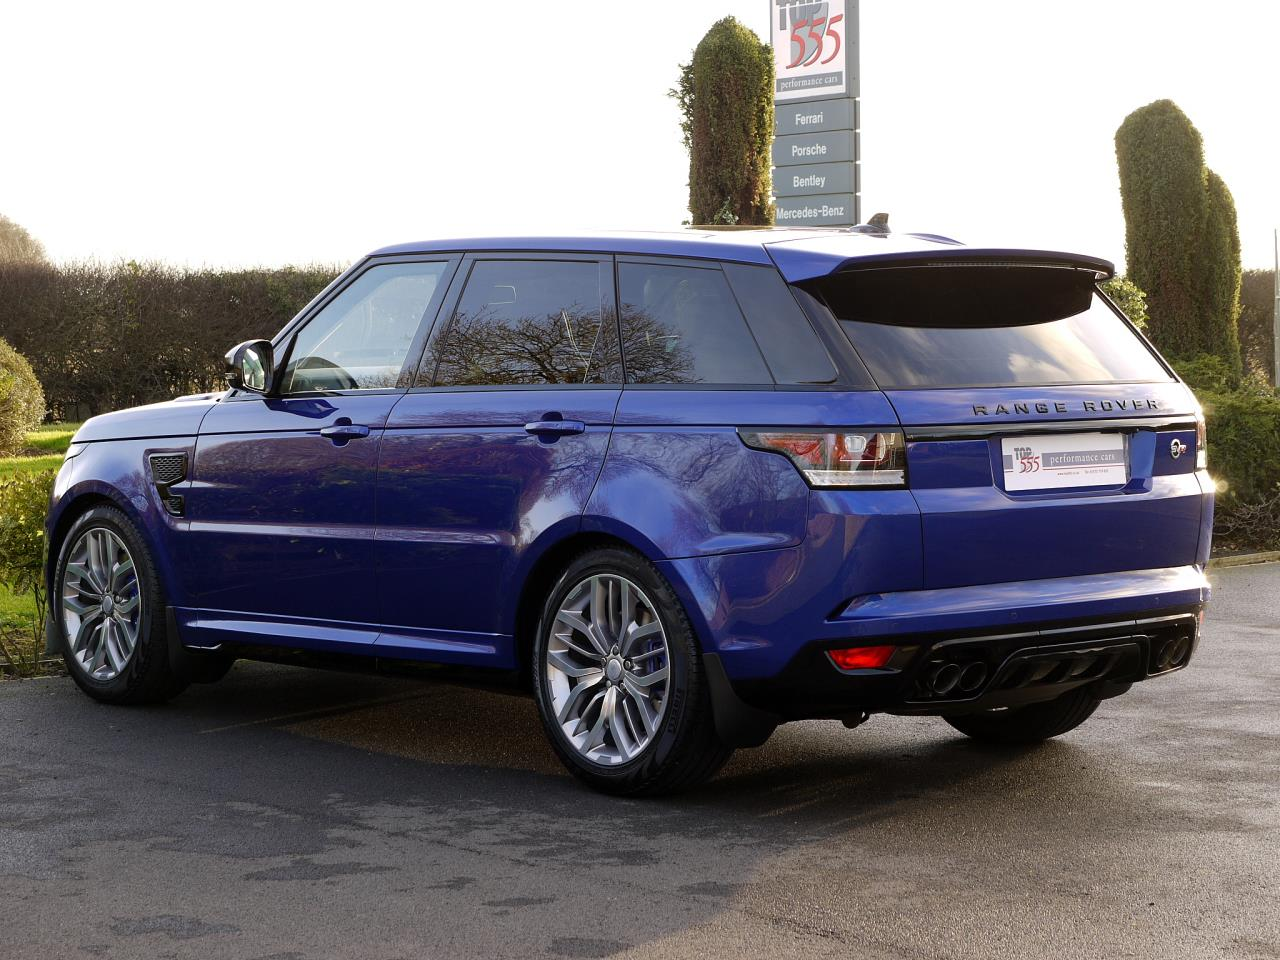 used land rover range rover sport 39 svr 39 v8 autobiography. Black Bedroom Furniture Sets. Home Design Ideas